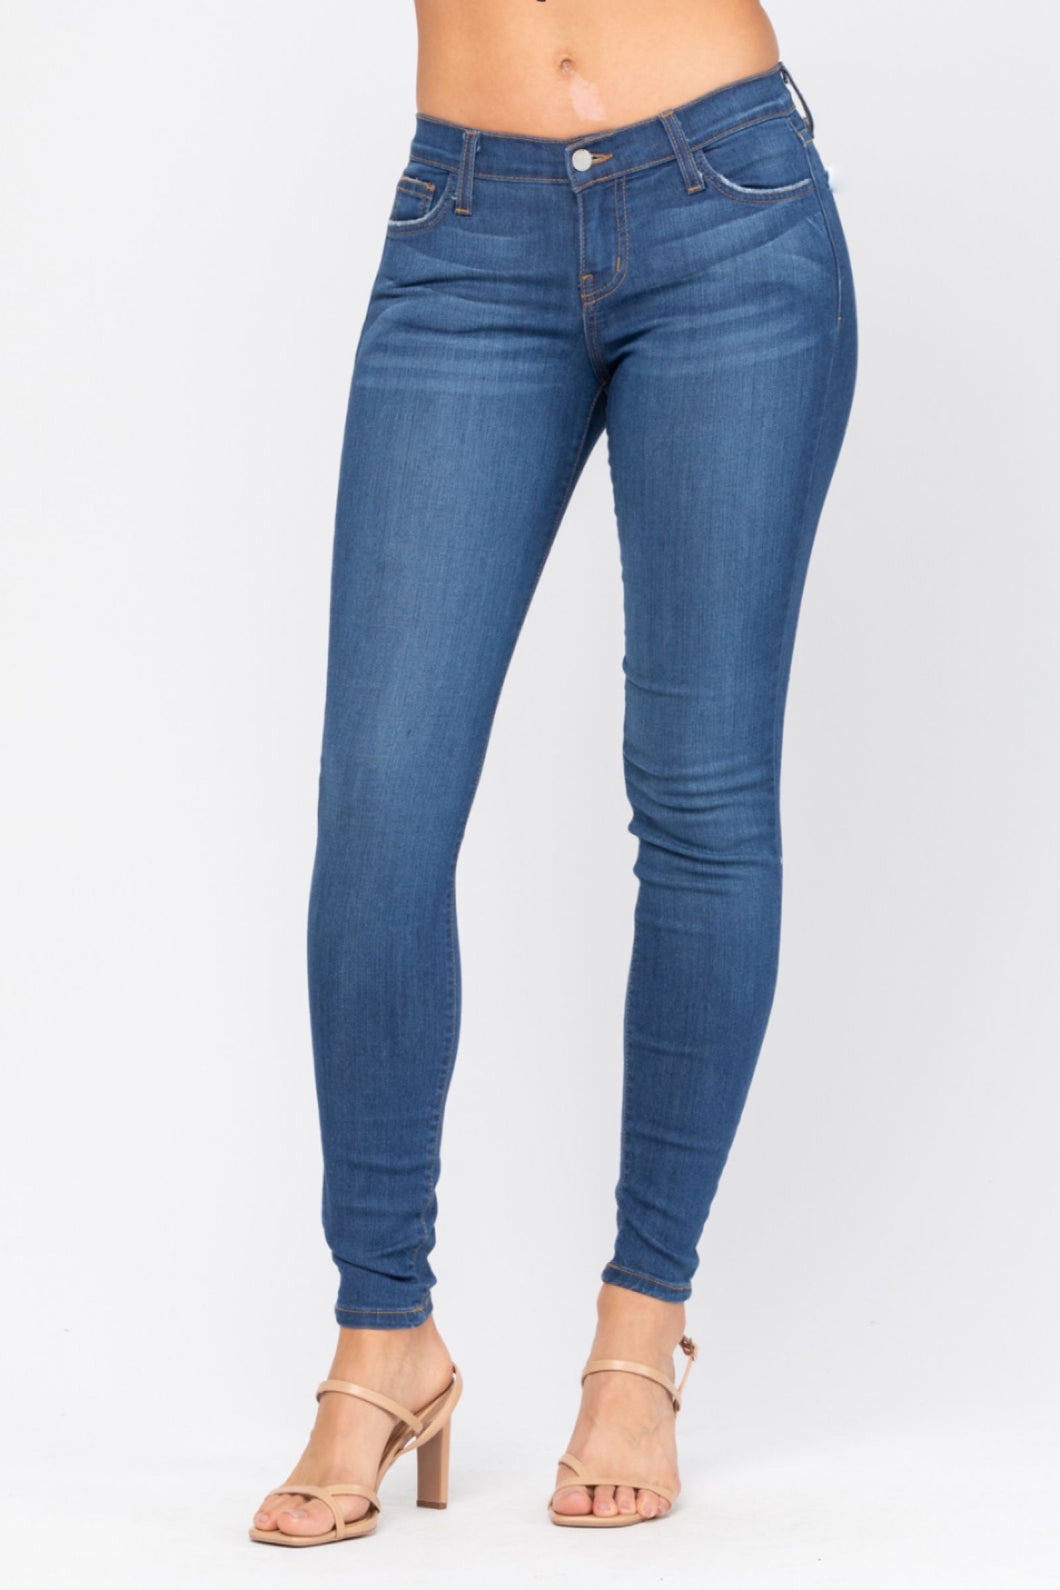 Judy blue non distressed handsand rayon skinny jeans